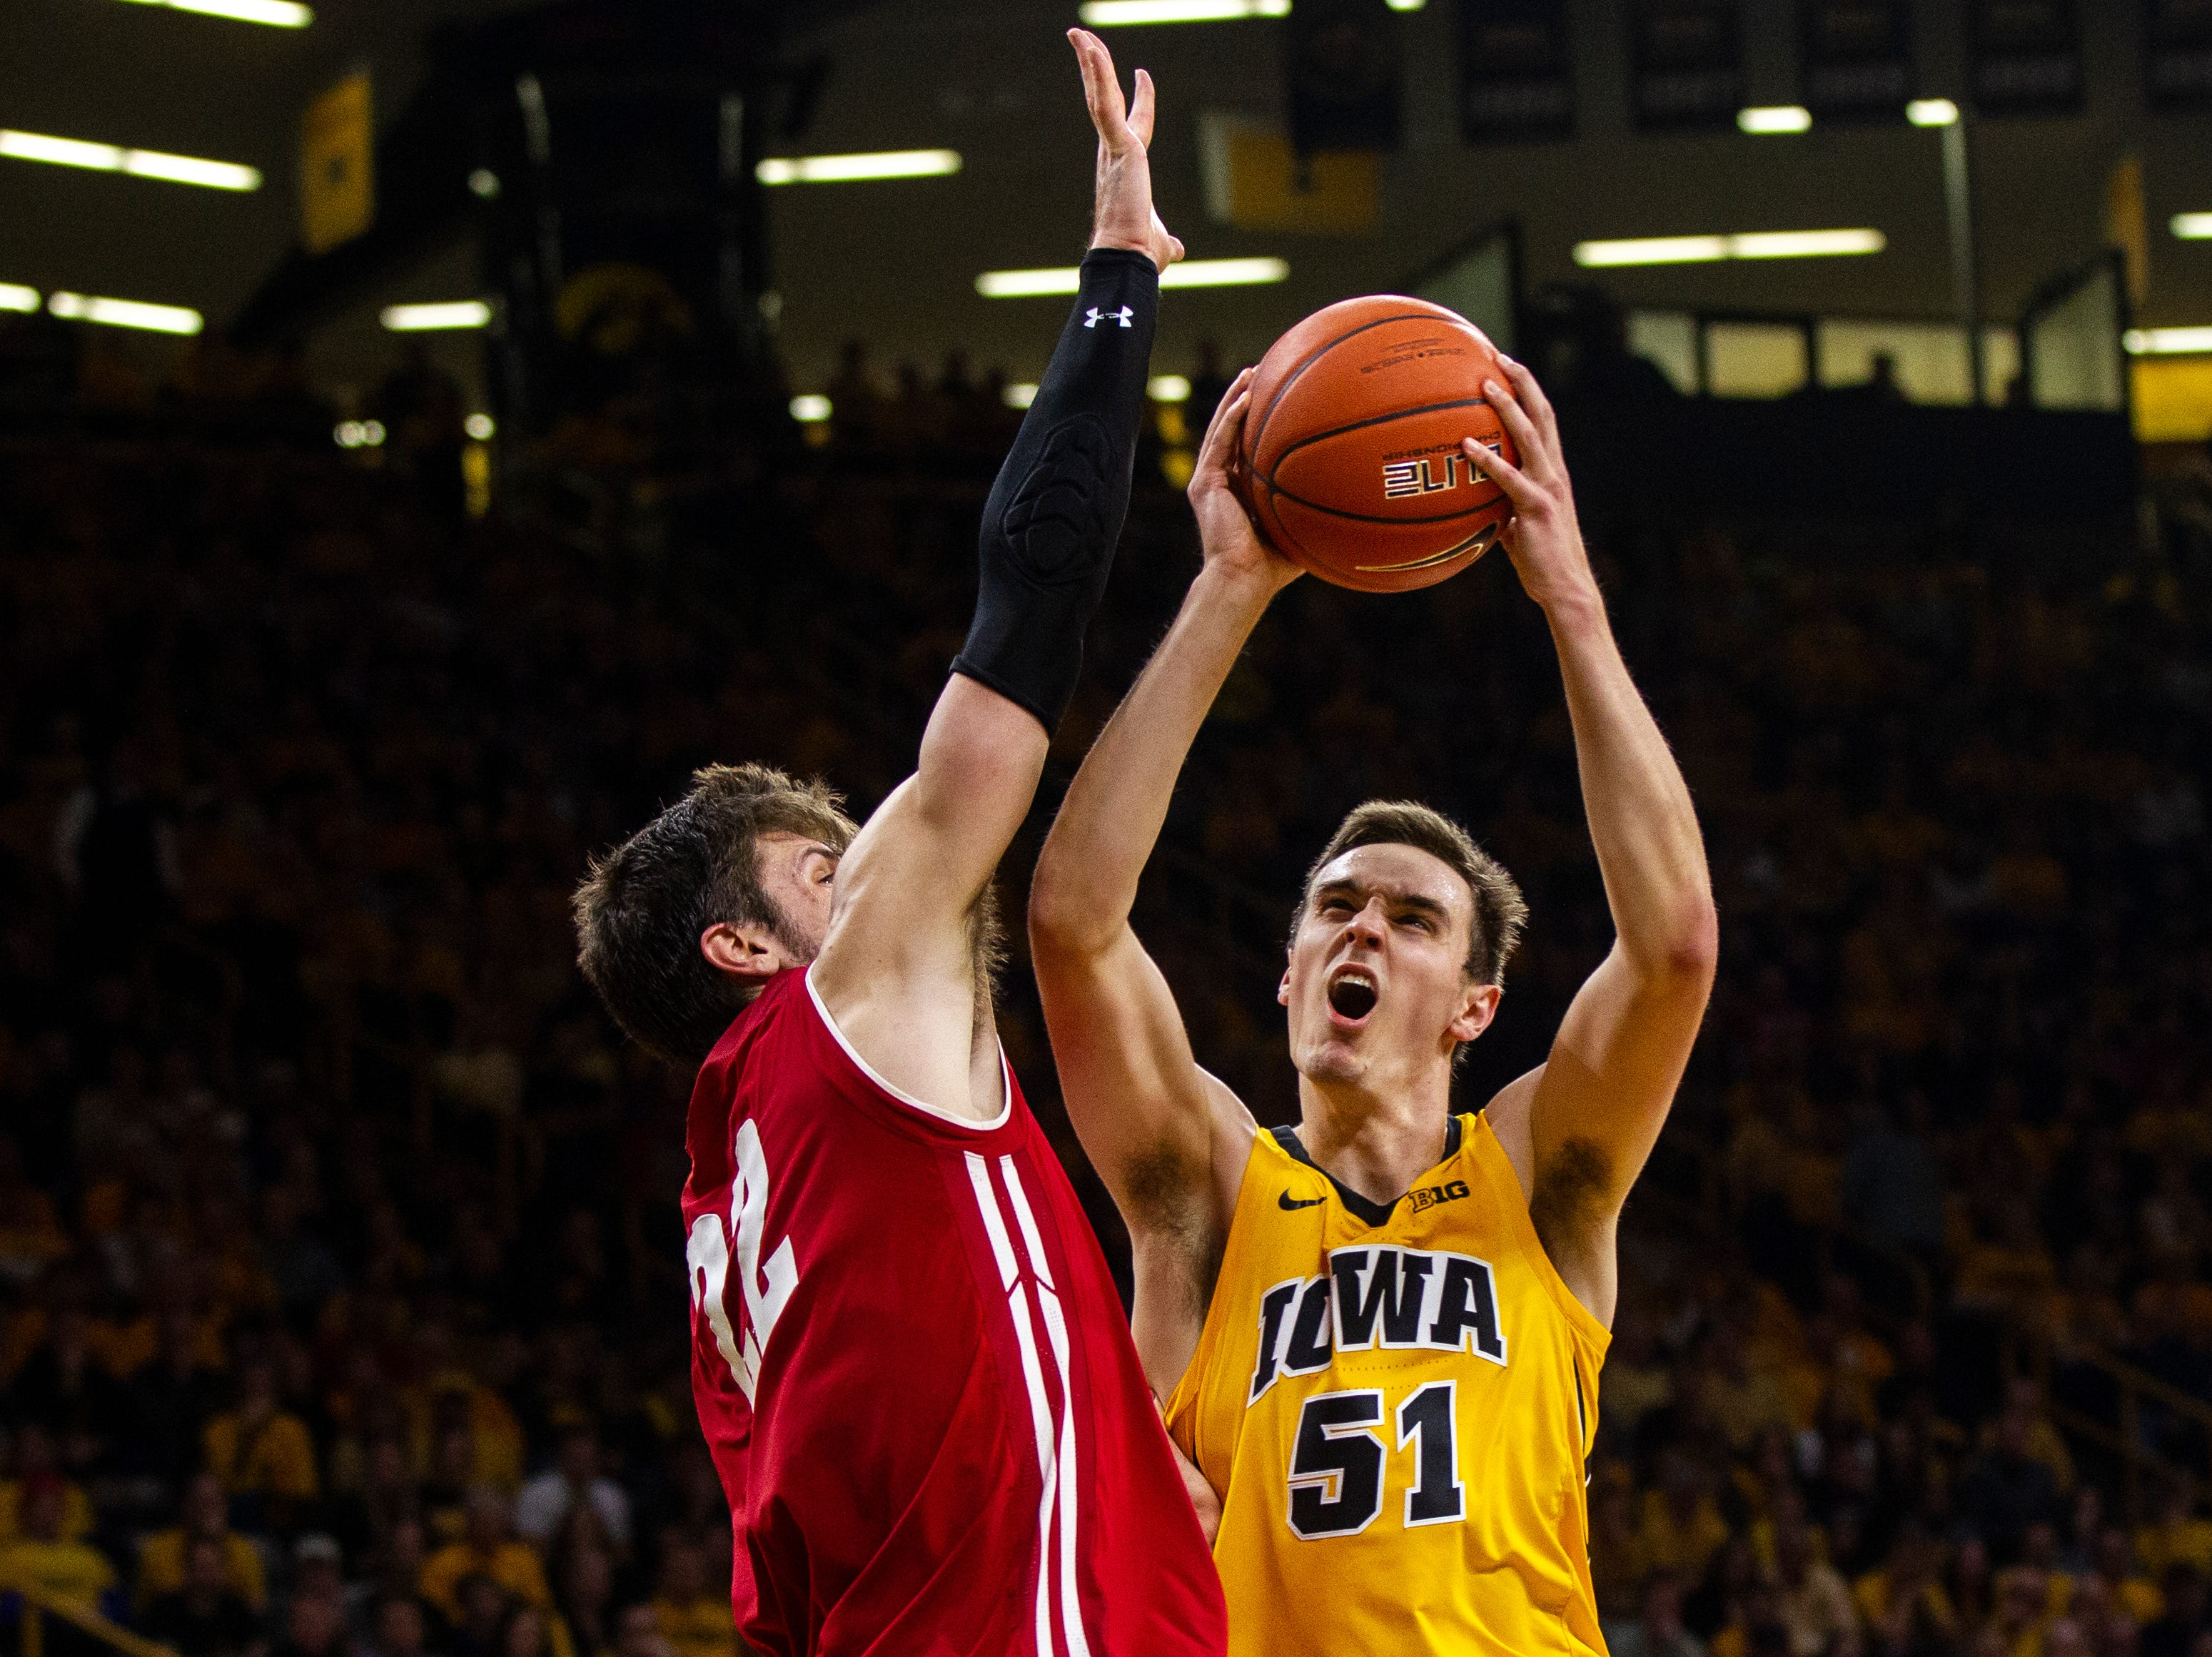 Iowa forward Nicholas Baer (51) drives to the hoop past Wisconsin's Ethan Happ (22) during a NCAA Big Ten Conference men's basketball game on Friday, Nov. 30, 2018, at Carver-Hawkeye Arena in Iowa City.